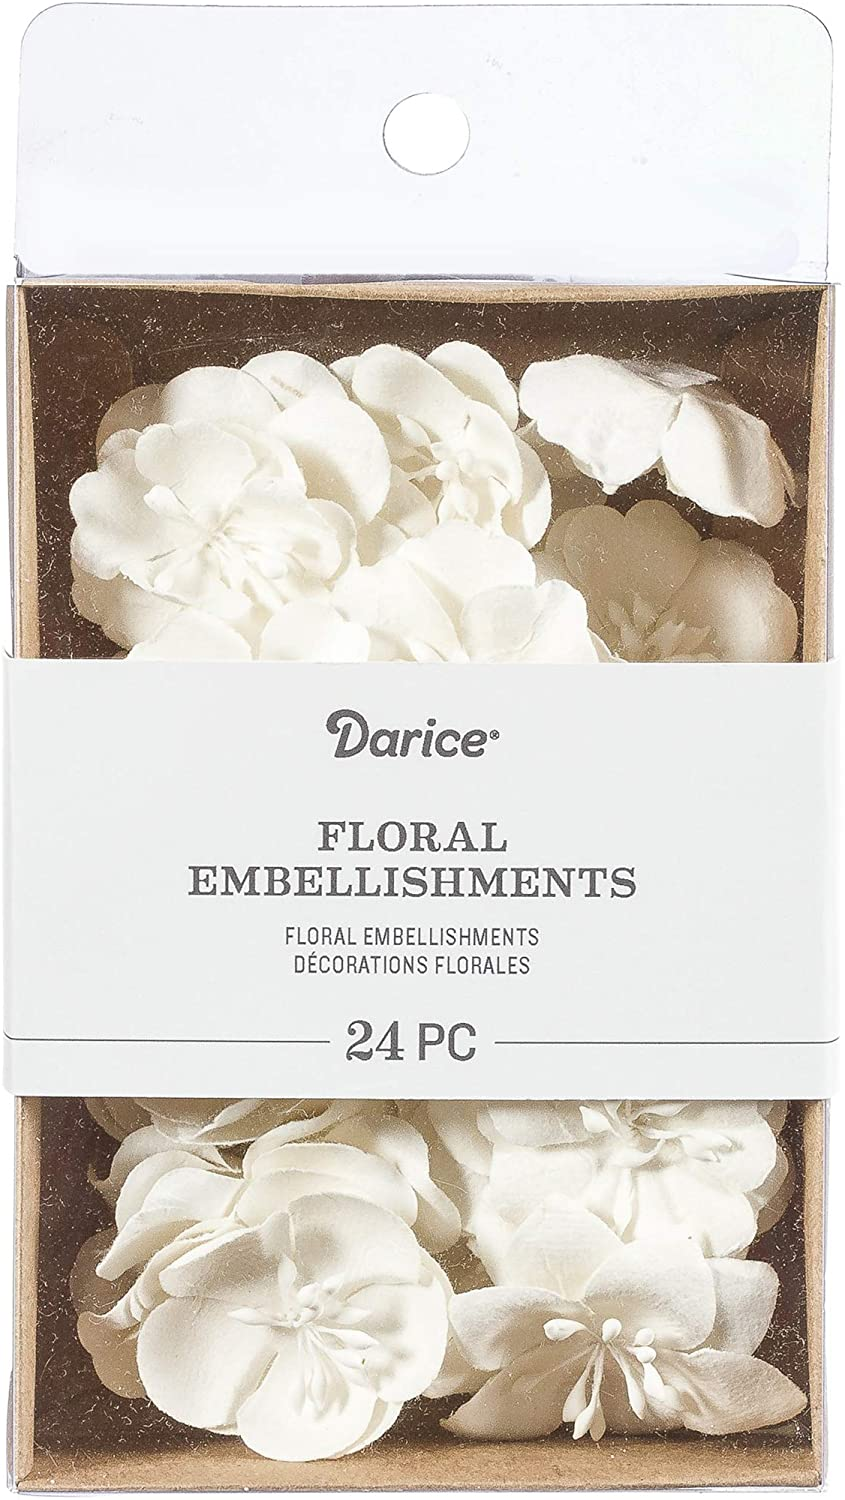 Darice White, Mulberry Floral Embellishments, 1.75 inches, 24 Pack